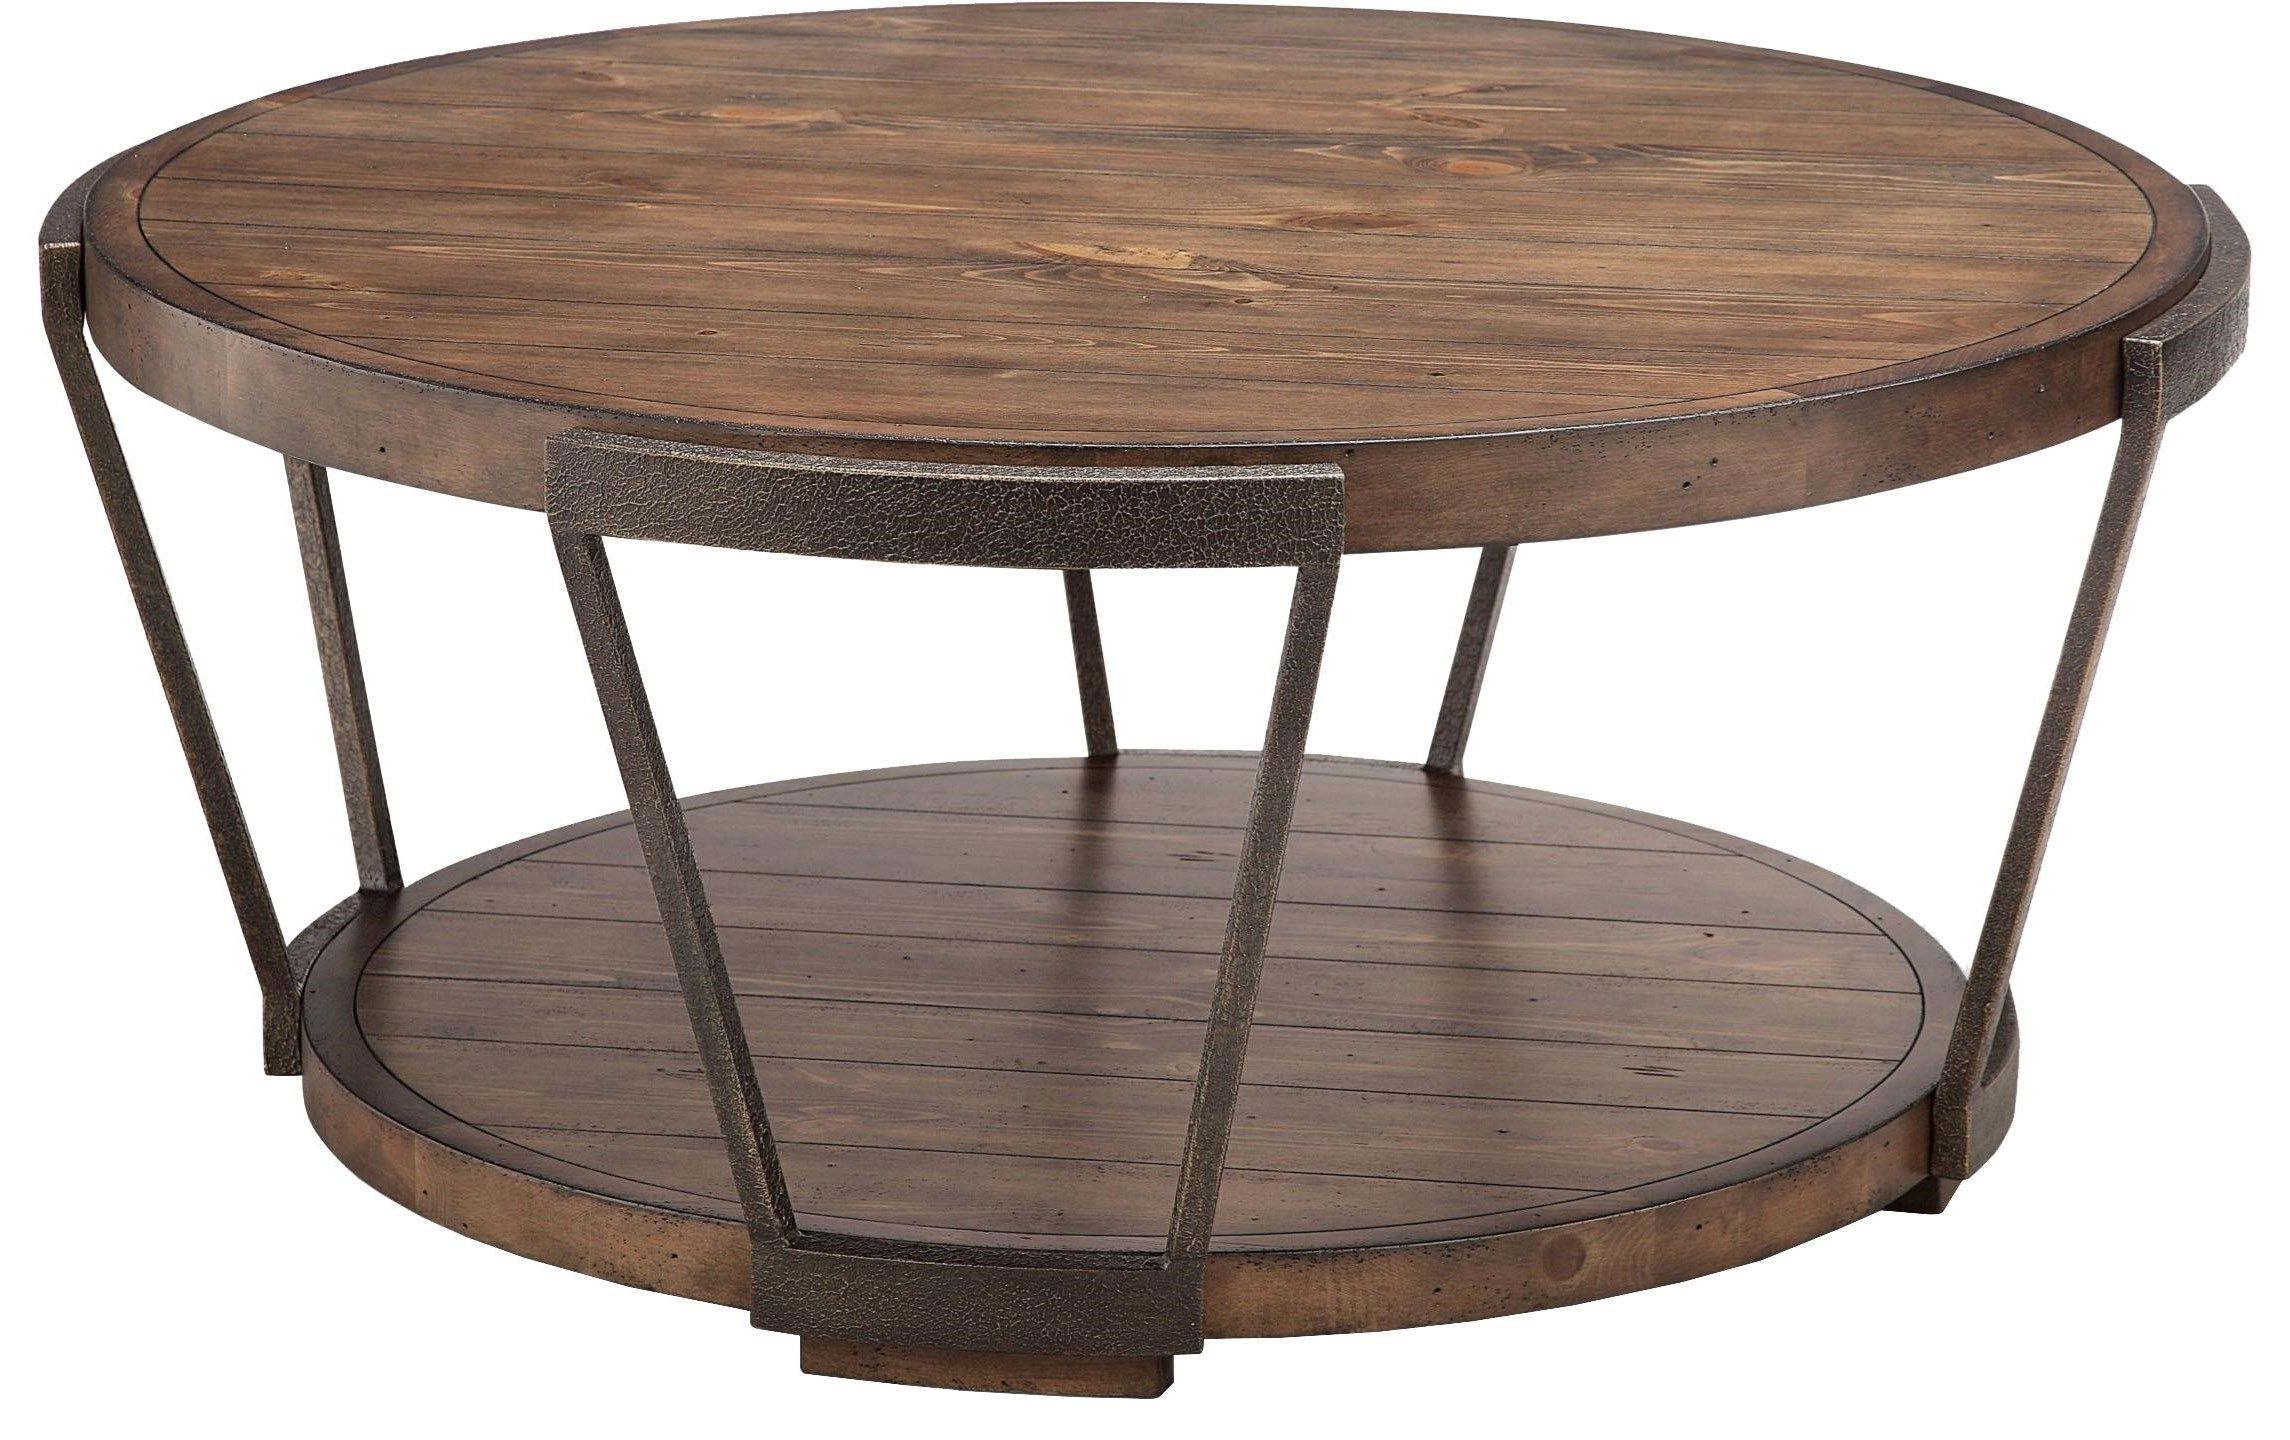 Round Cocktail Table at Sadler's Home Furnishings